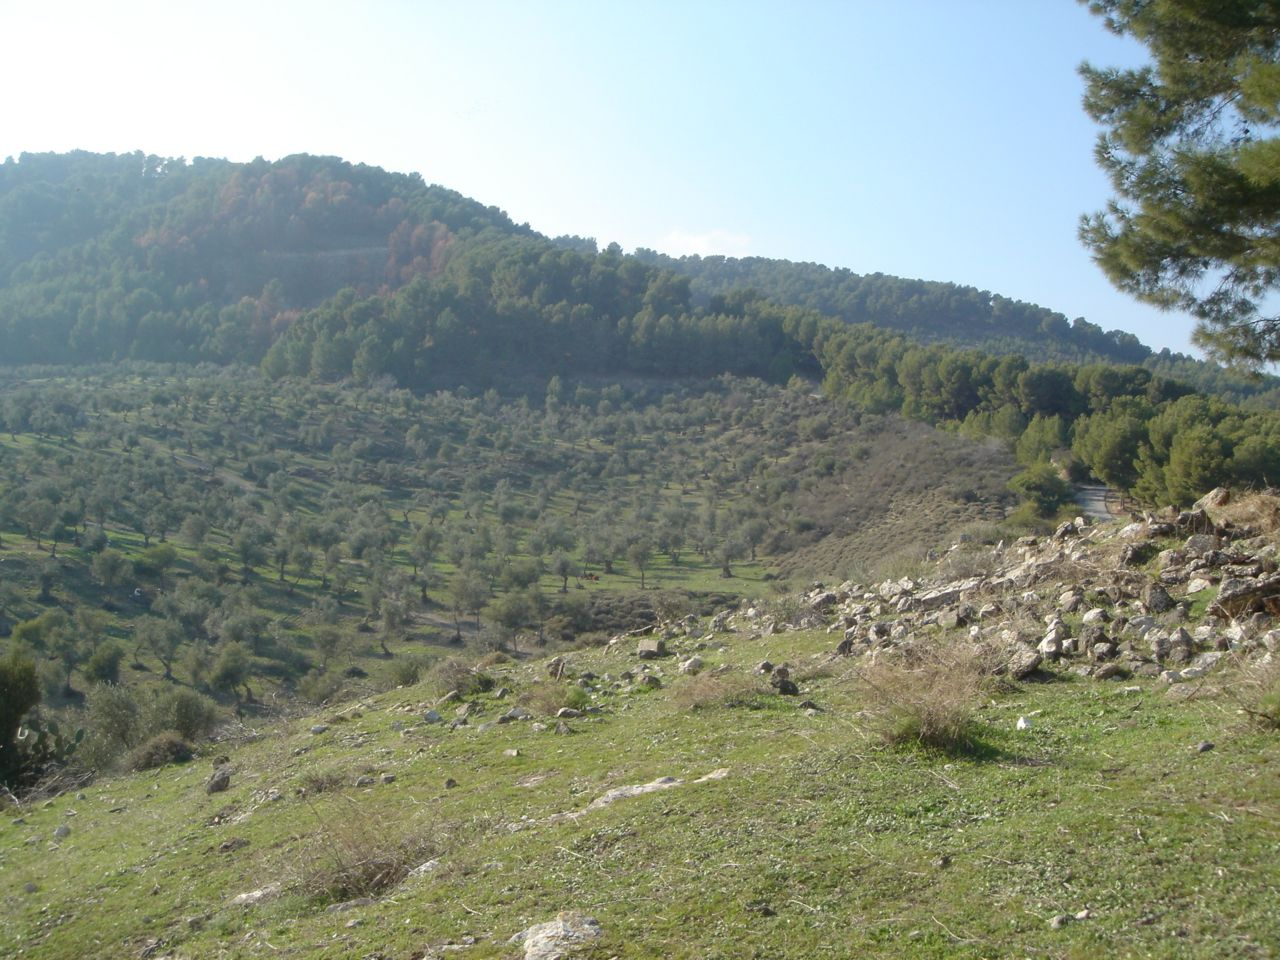 Qabba'a - قبّاعة : Olive trees with some rubble of houses on the right